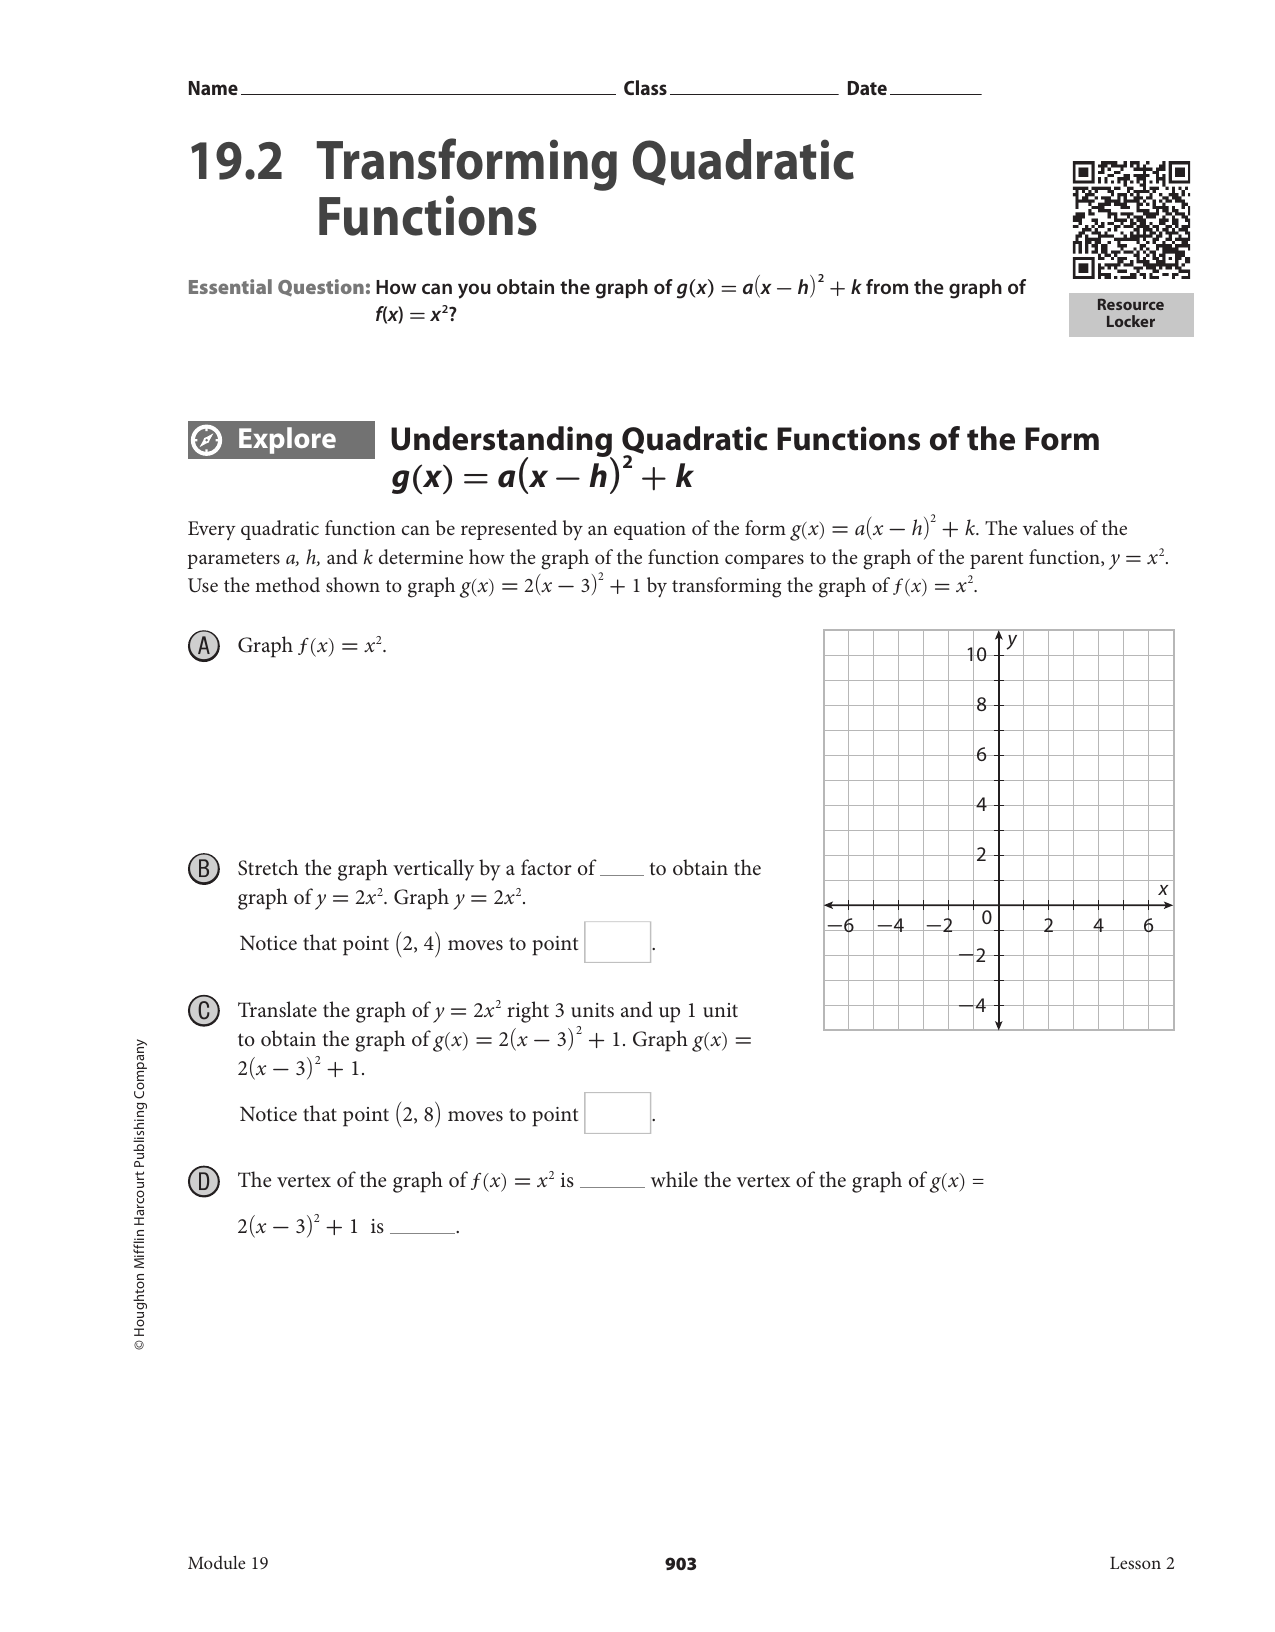 Worksheet Practice PACKET additionally Scaling and translating quadratic functions additionally 8 3 Worksheet  transformations of quadratic functions   YouTube likewise Online Graphs 2018 » quadratic graphs worksheet   Online Graphs as well Transformations of Quadratics and Absolute Value Function also Transformation Of Quadratic Function Worksheets  Transformations Of additionally  as well Alge 1 Worksheets   Quadratic Functions Worksheets additionally Write the quadratic function    Clroom   Algebra  Math games together with Transformations Worksheets   Ivoiregion moreover quadratic functions worksheet – propertyrout in addition Transformations on Quadratic Functions Practice by Morgan Sargent besides  besides 19 2 Transforming Quadratic Functions together with  as well . on transformations of quadratic functions worksheet